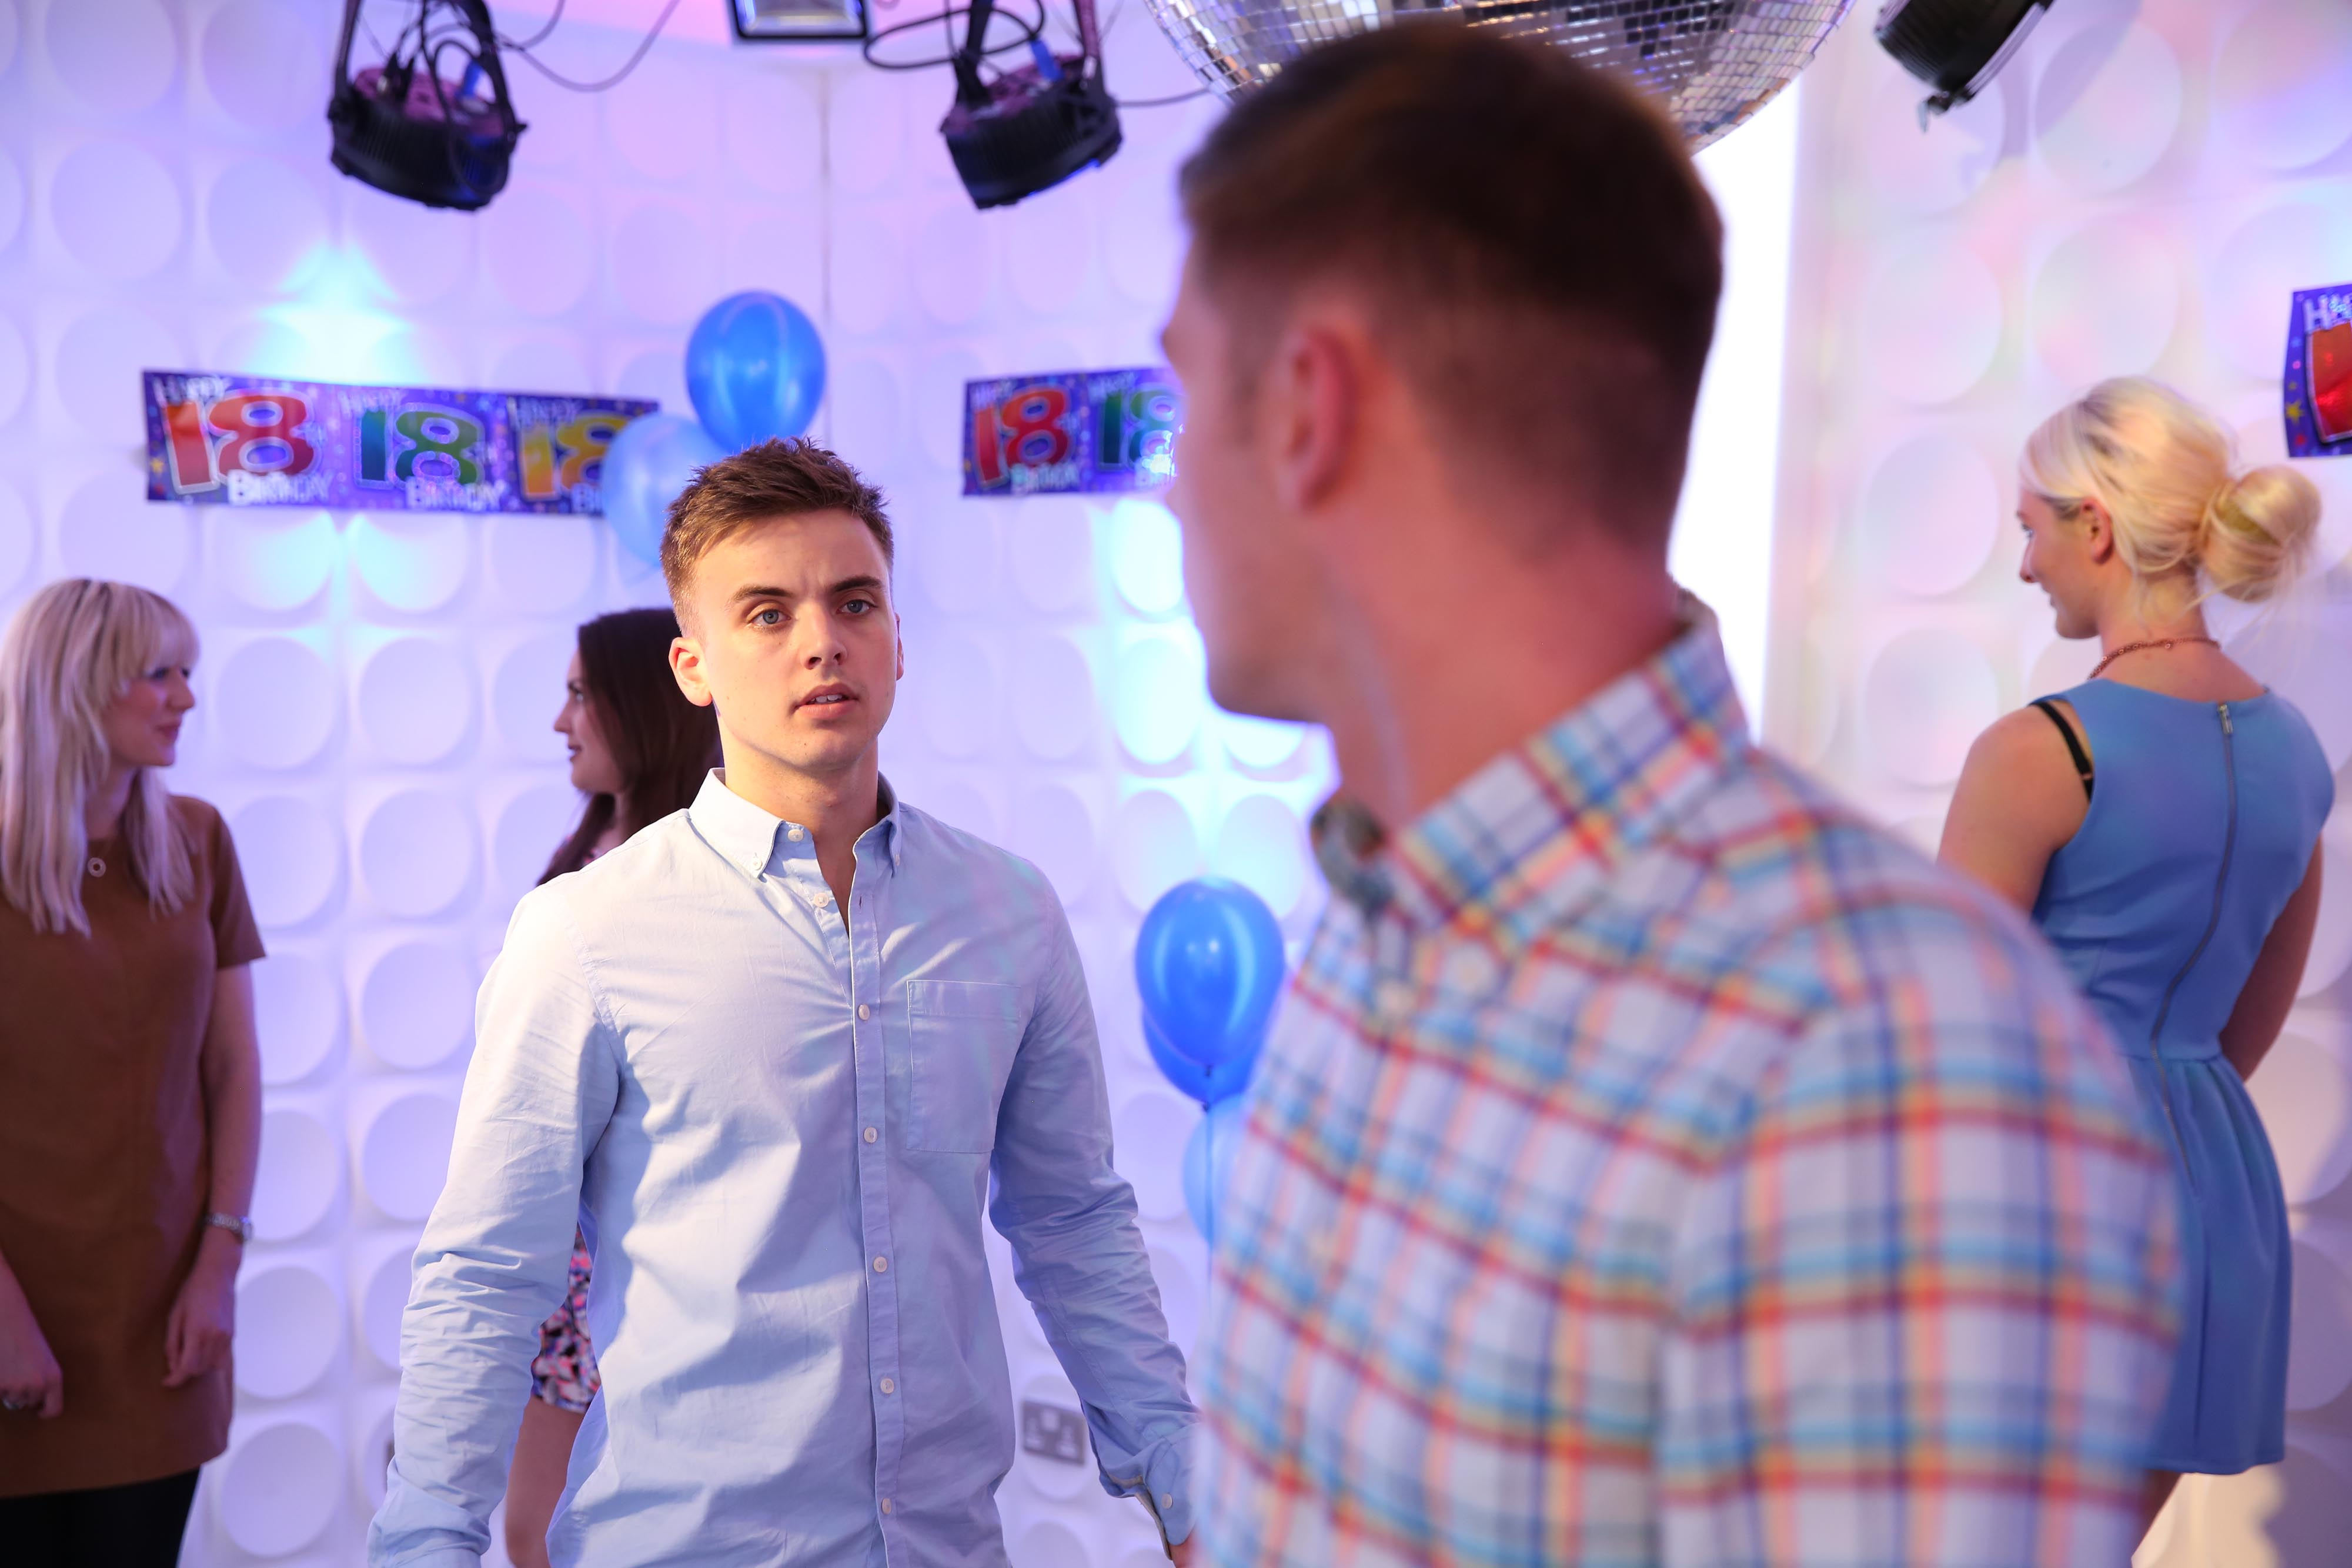 Hollyoaks Parry Glasspool Harry Doesn T Have To Hide His Feelings Because It S Kind Of Out There News Hollyoaks What S On Tv 23 parry glasspool premium high res photos. whatsontv co uk